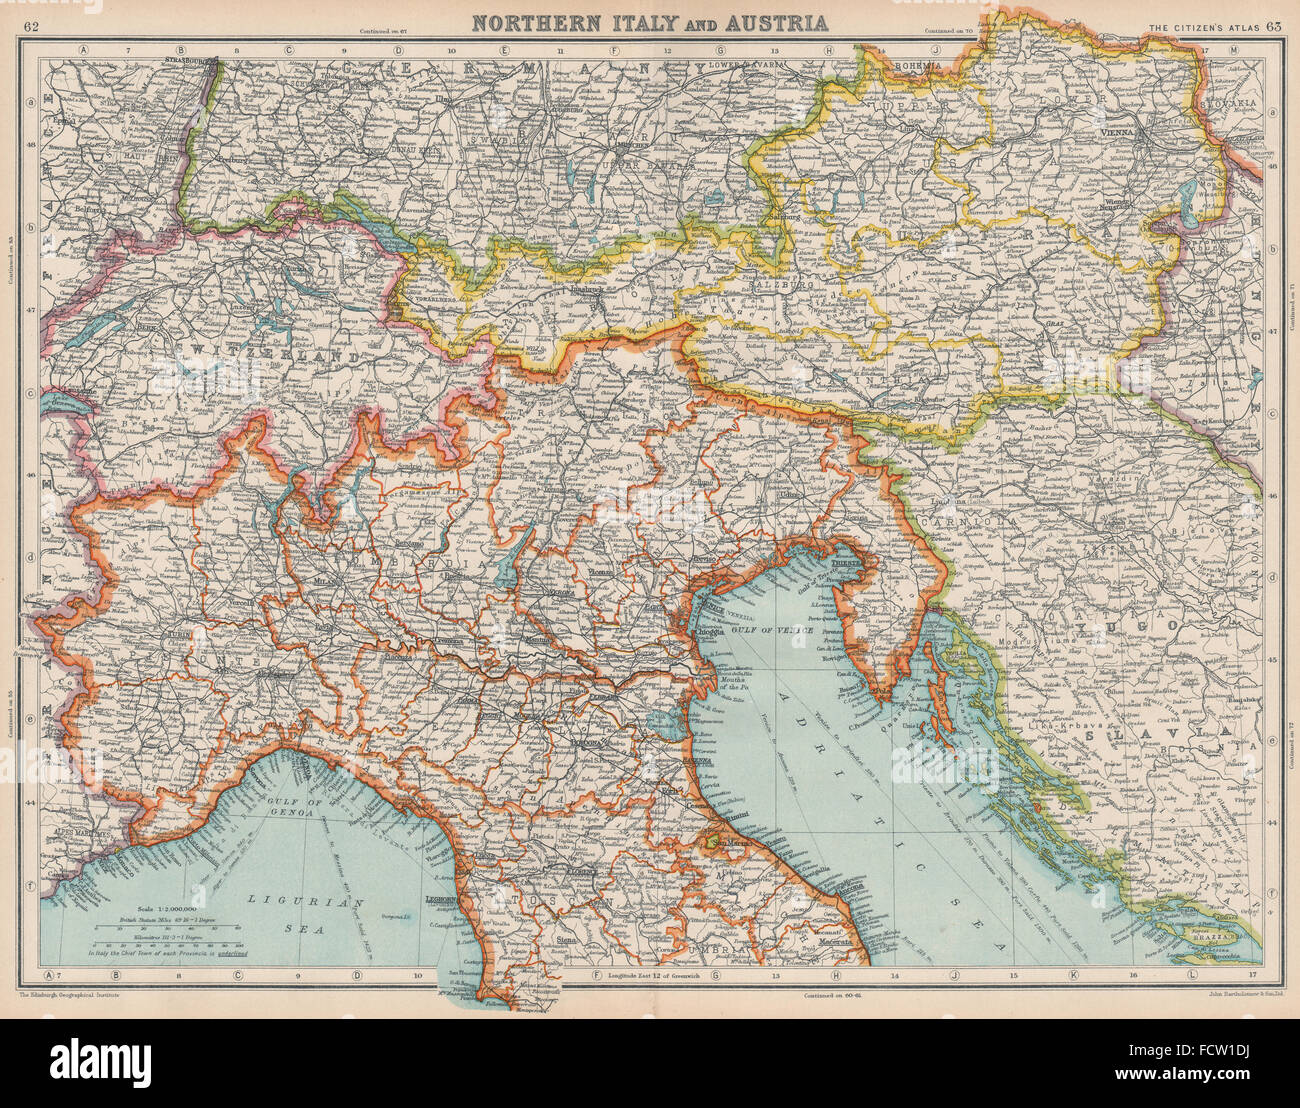 Map Of Northern Italy And Austria.North Italy Austria Italian Istria Zara Zadar Free State Of